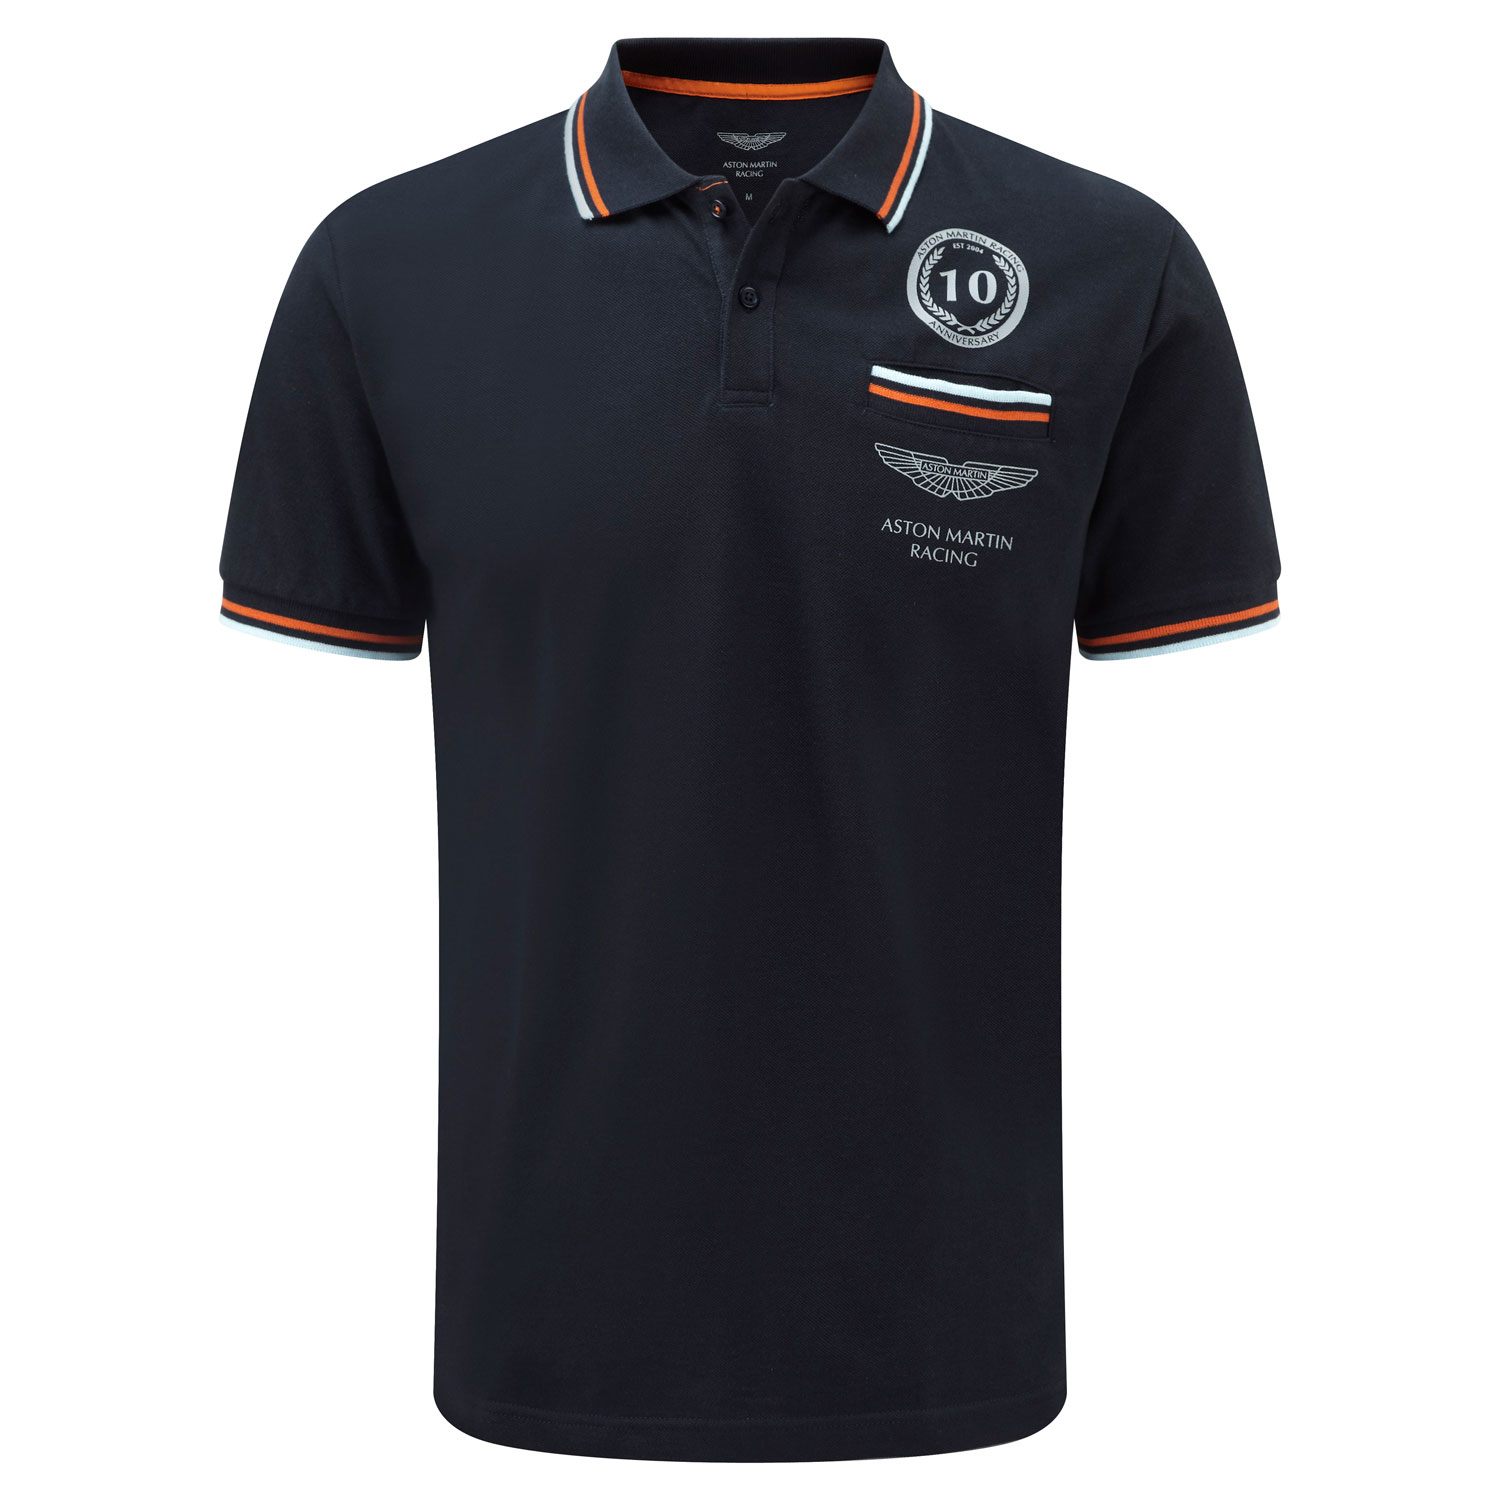 aston martin racing 2014 casual polo shirt ebay. Black Bedroom Furniture Sets. Home Design Ideas